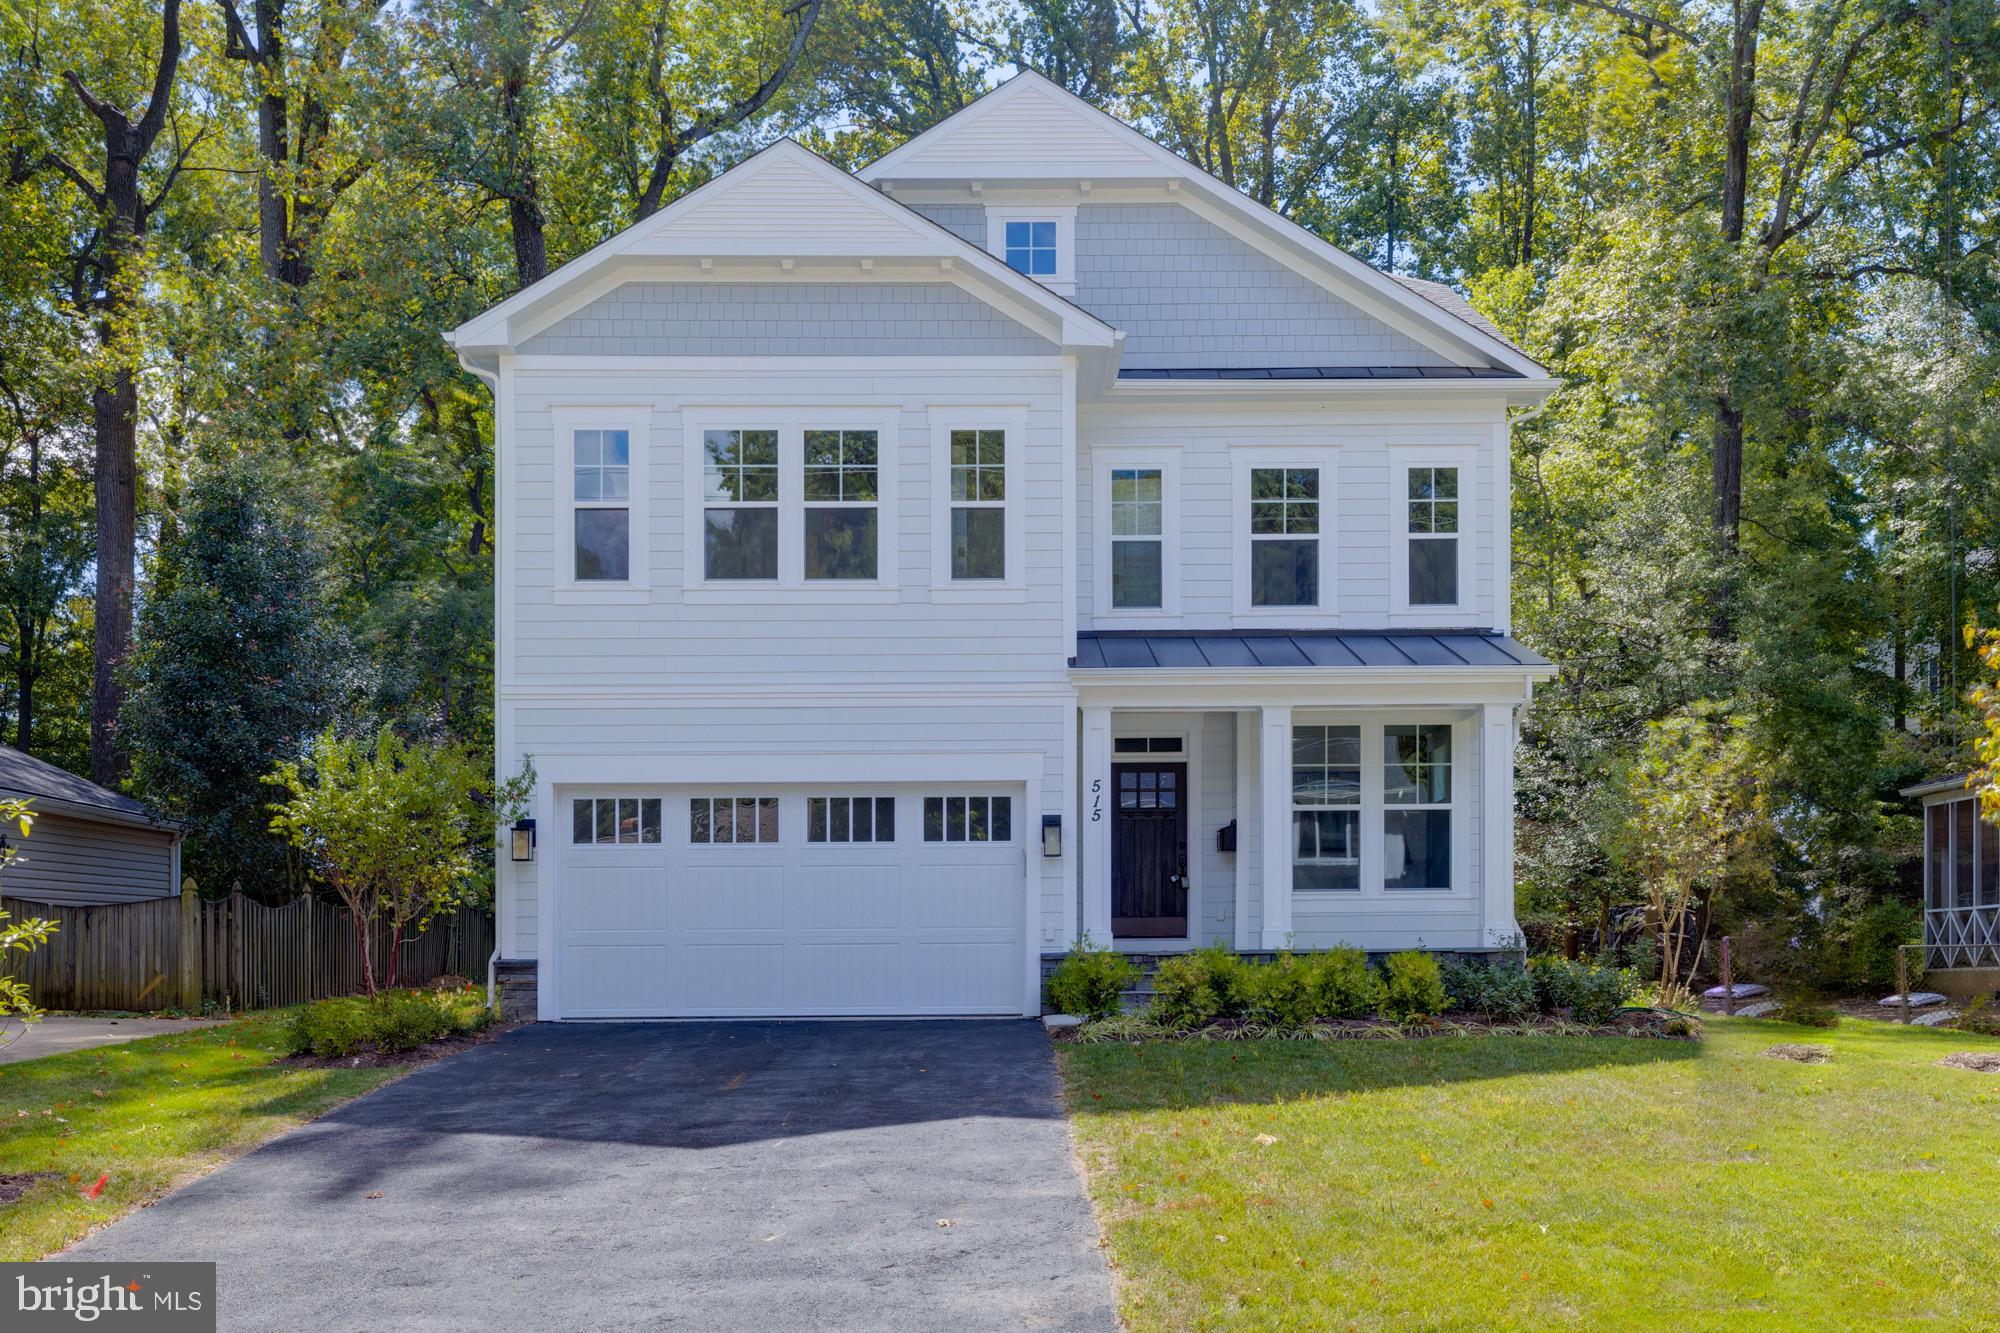 515 TIMBER LANE, FALLS CHURCH, VA 22046